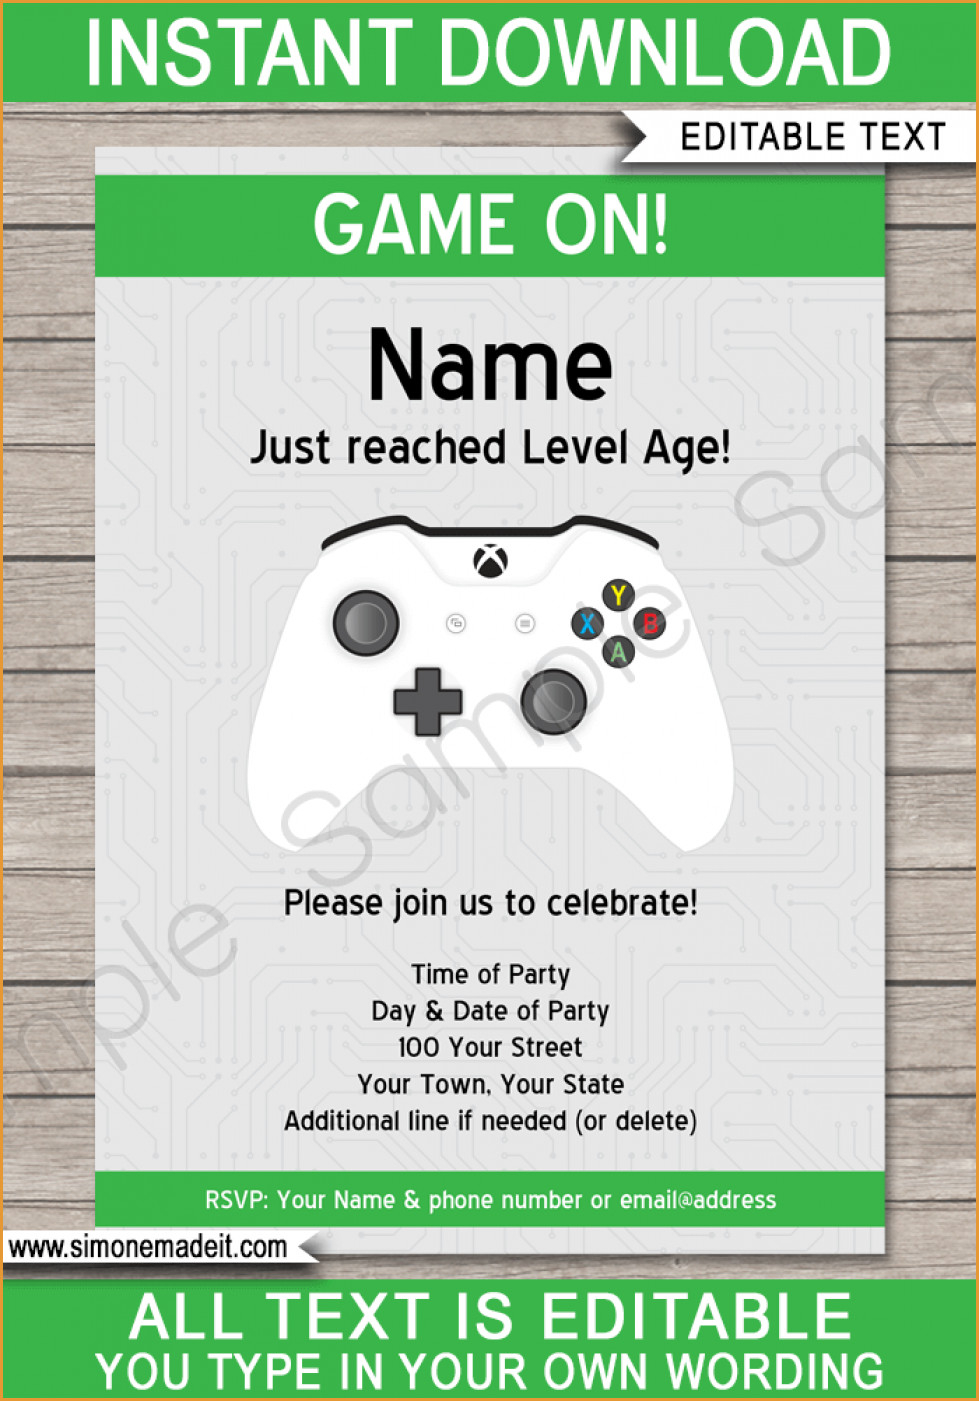 Party Invitations: Simple Video Game Party Invitations Designs Free - Free Printable Video Game Party Invitations